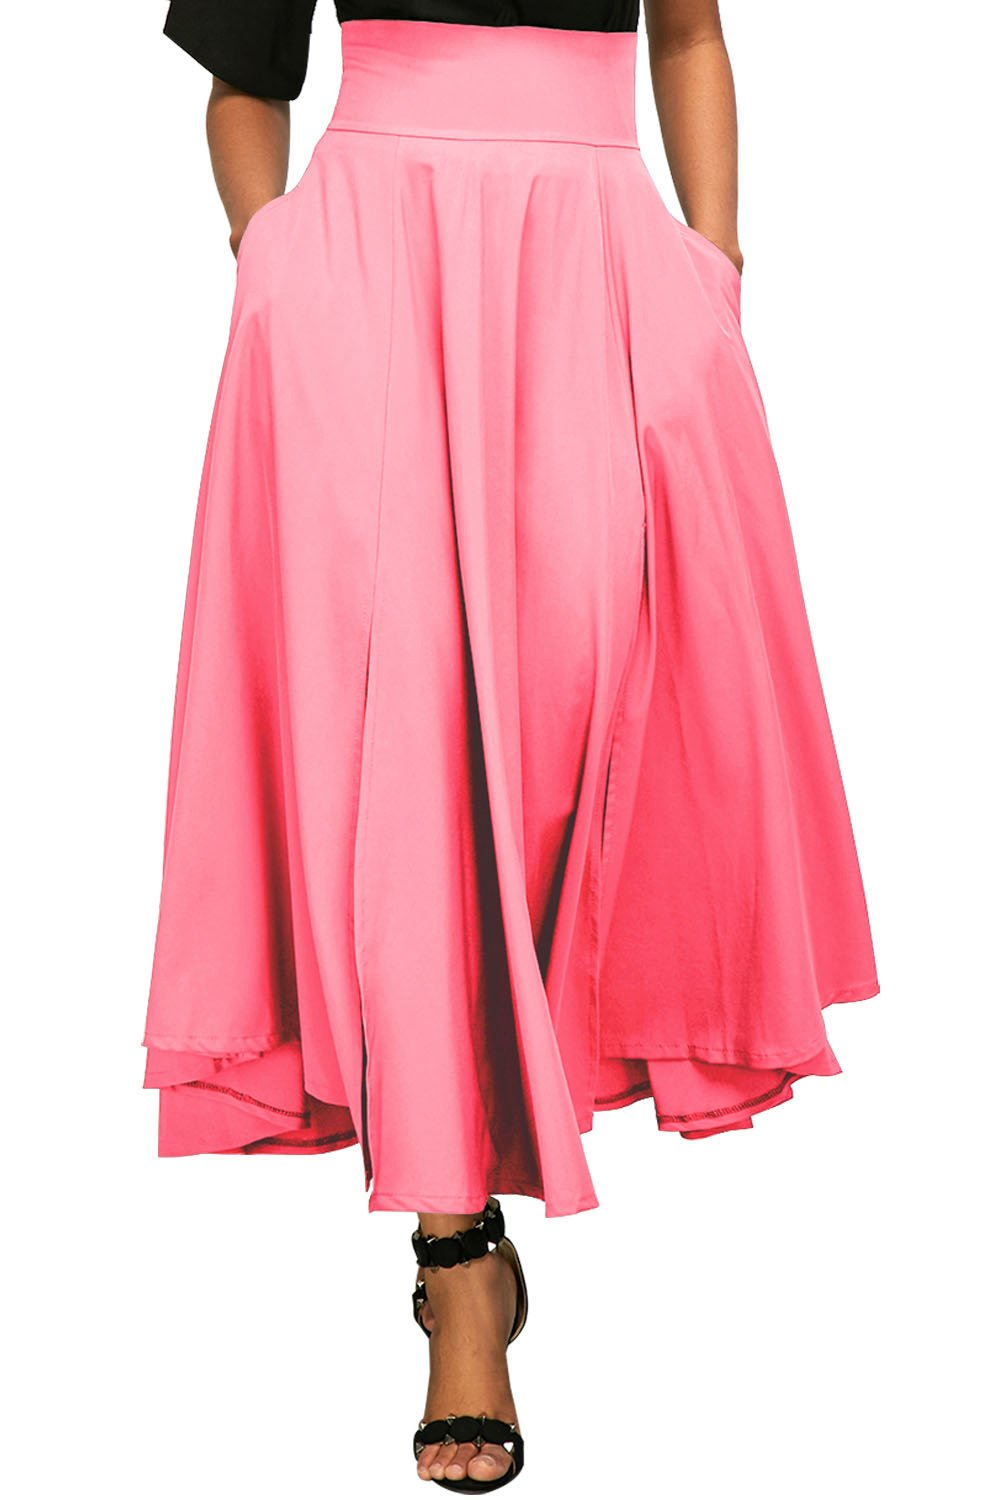 Vanbuy Women's High Waist Pleated Long Skirt Front Slit Belted Midi Skirt with Pockets Z73-65053-Pink-M